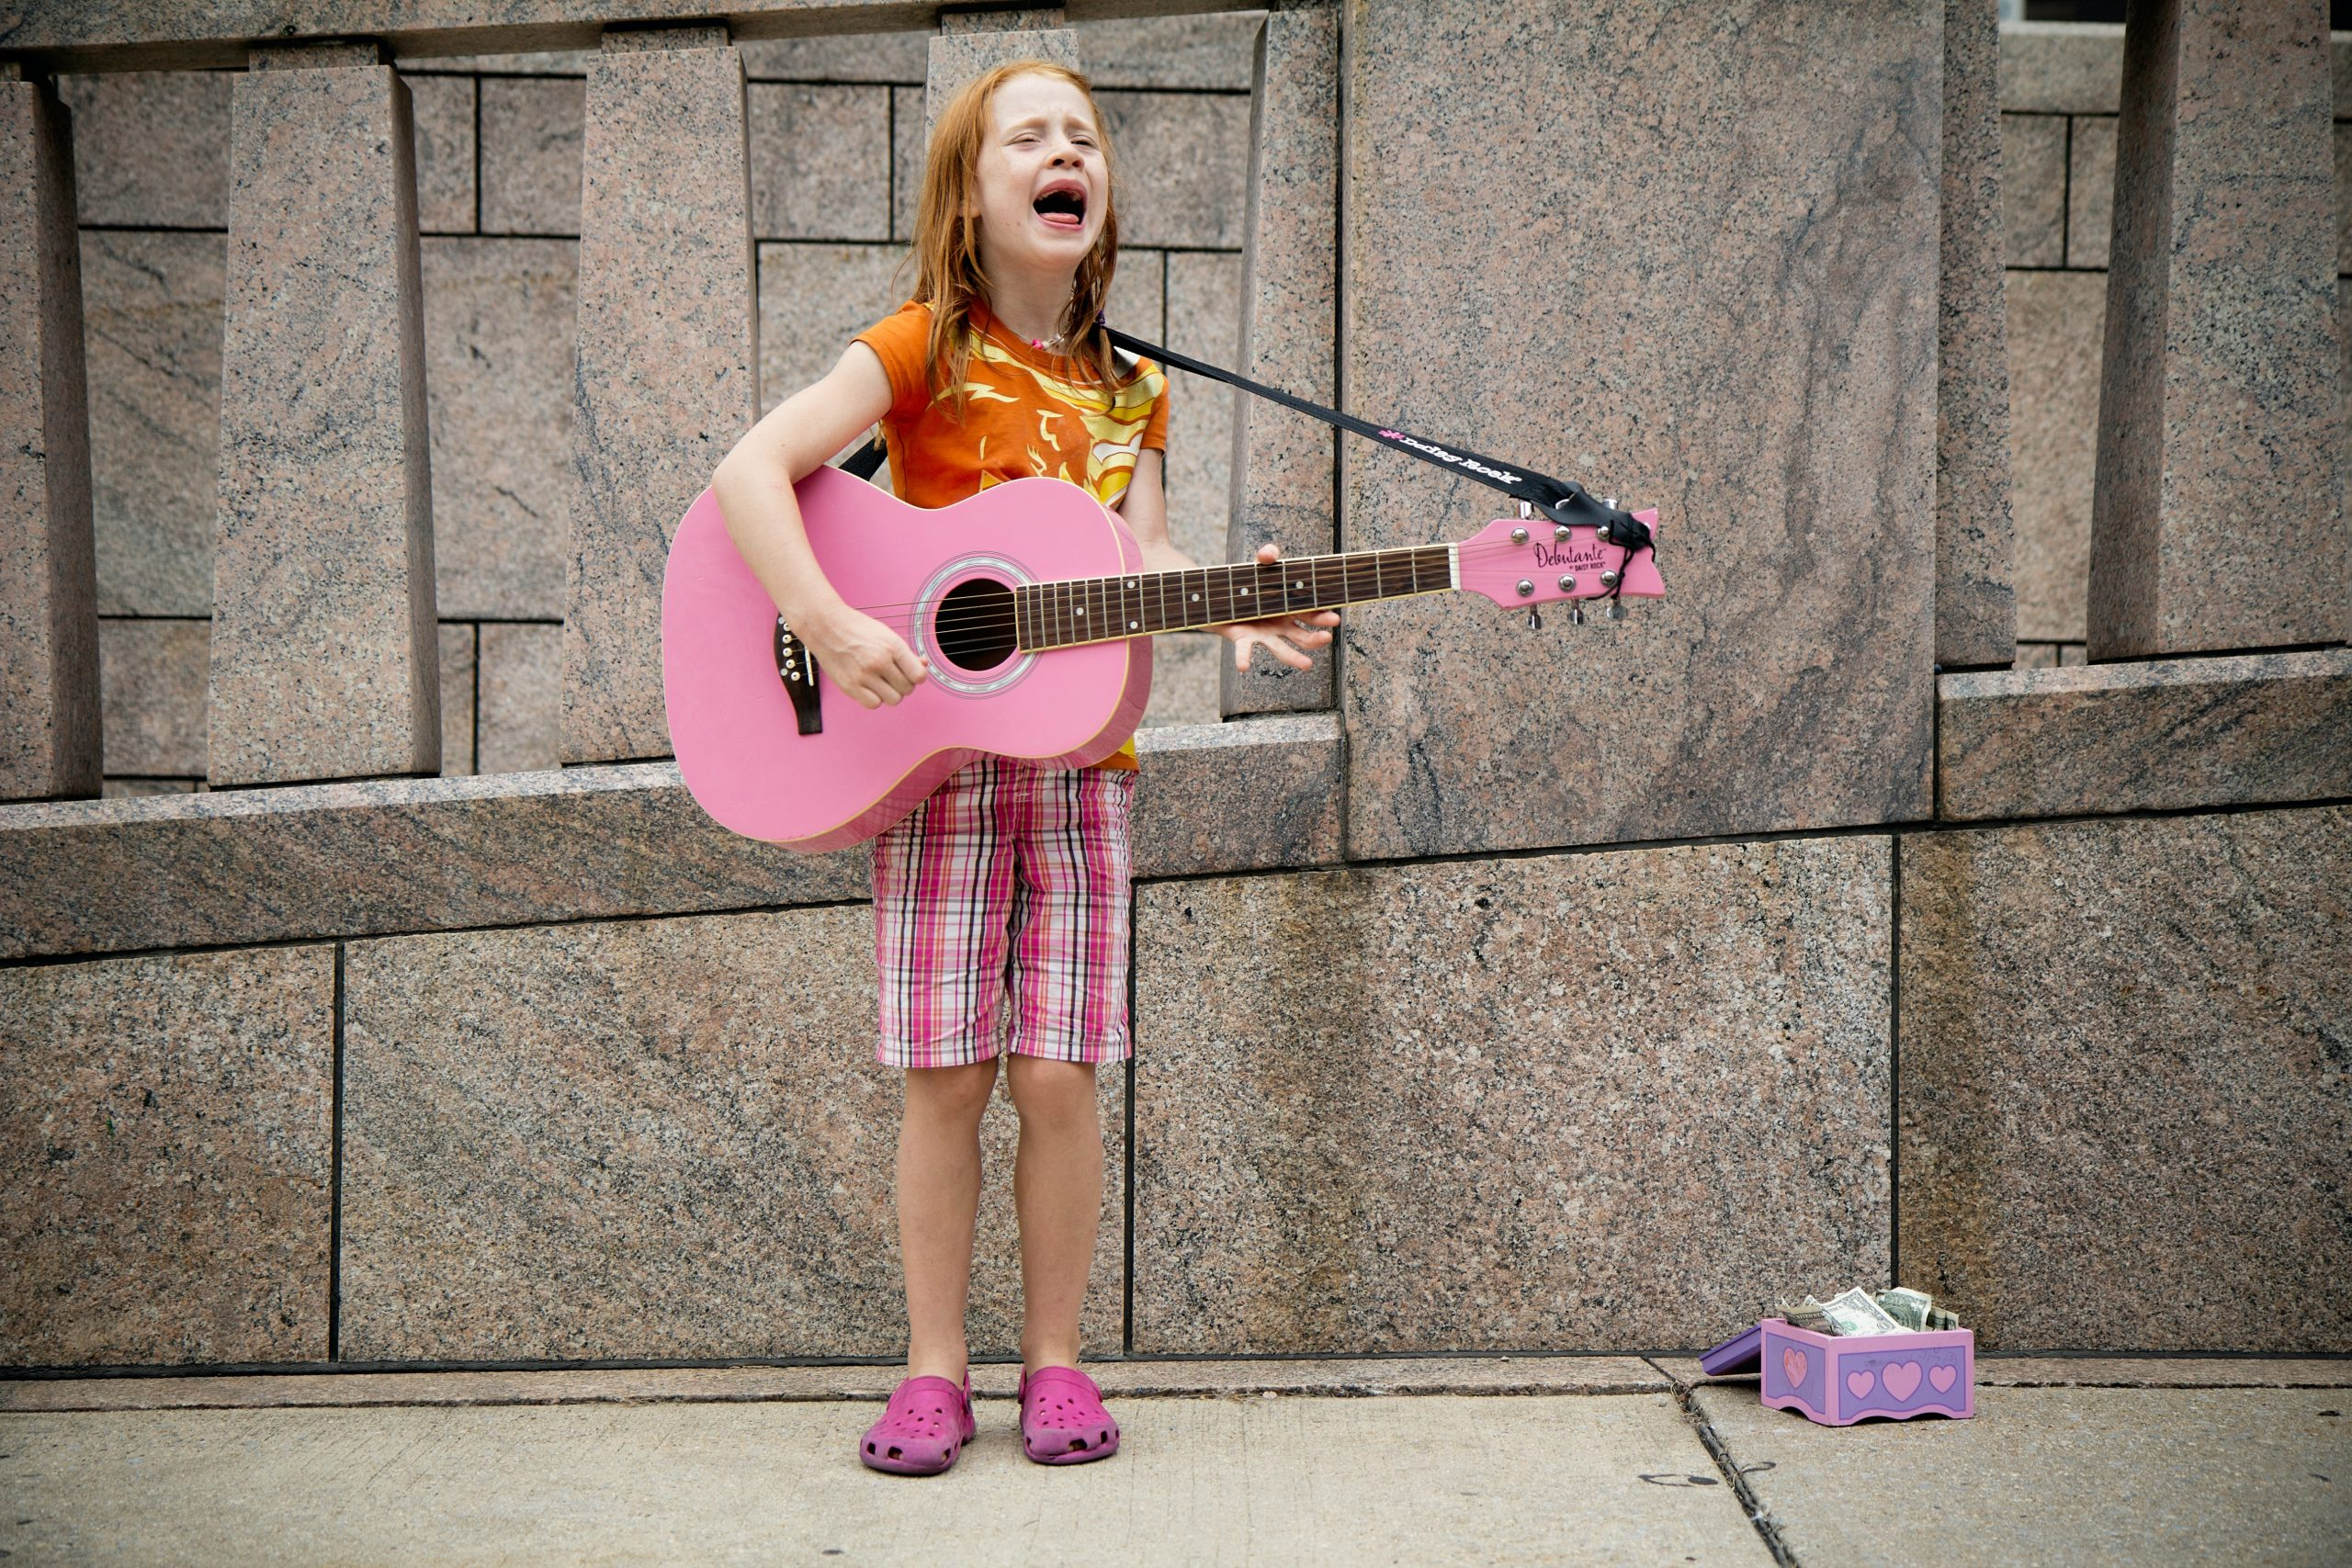 Young girl with red hair wearing pink checked shorts and an orange t-short, playing a pink guitar on a pavement, with a box of money on the floor.